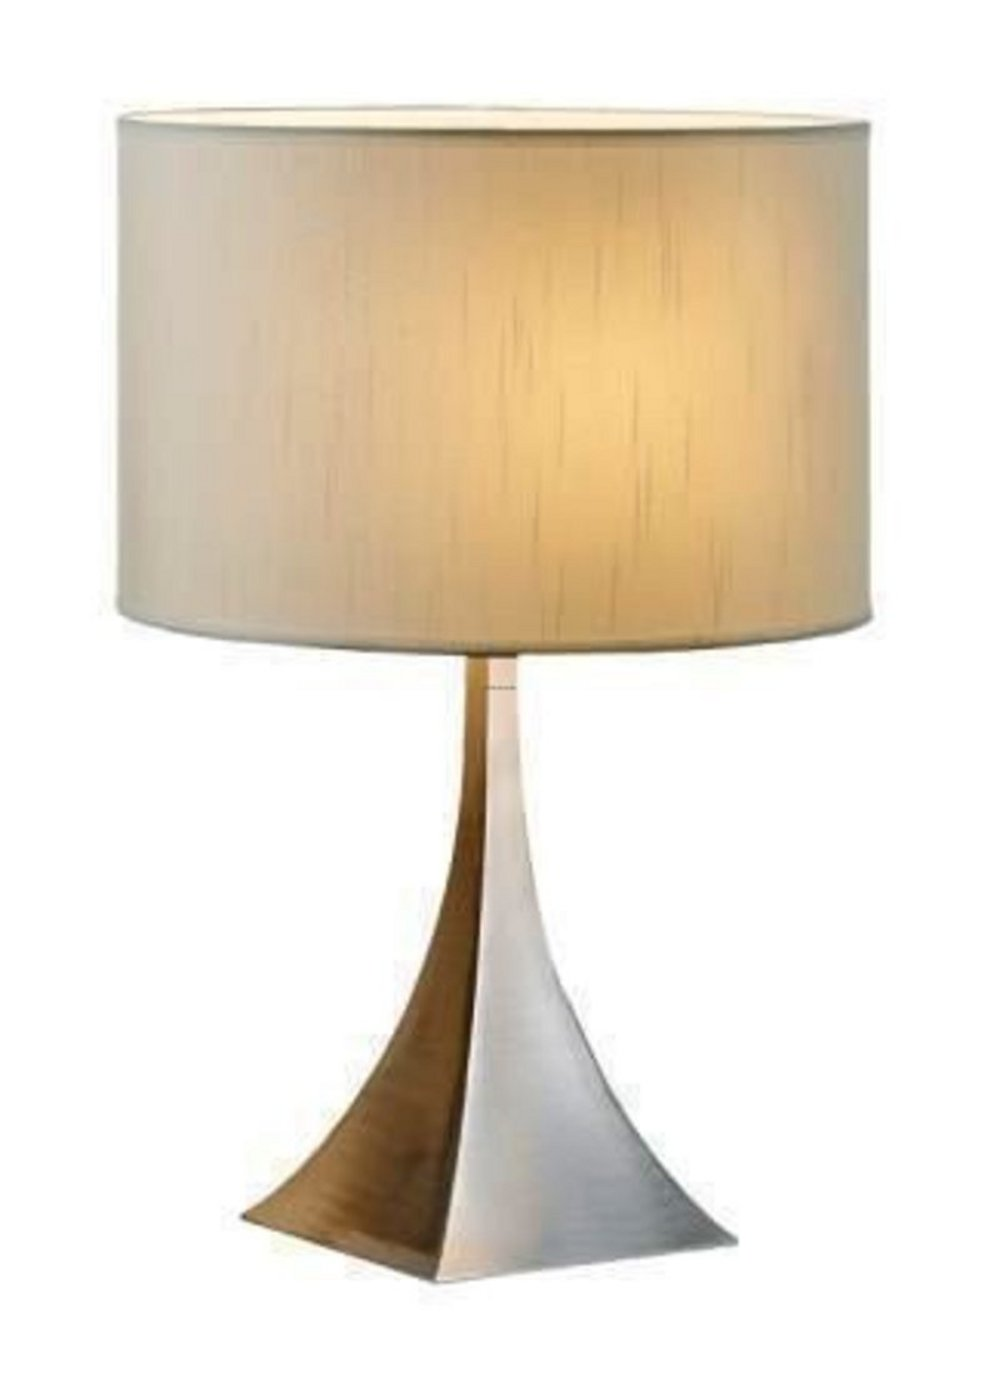 Unique Rectangular Base Table Lamp